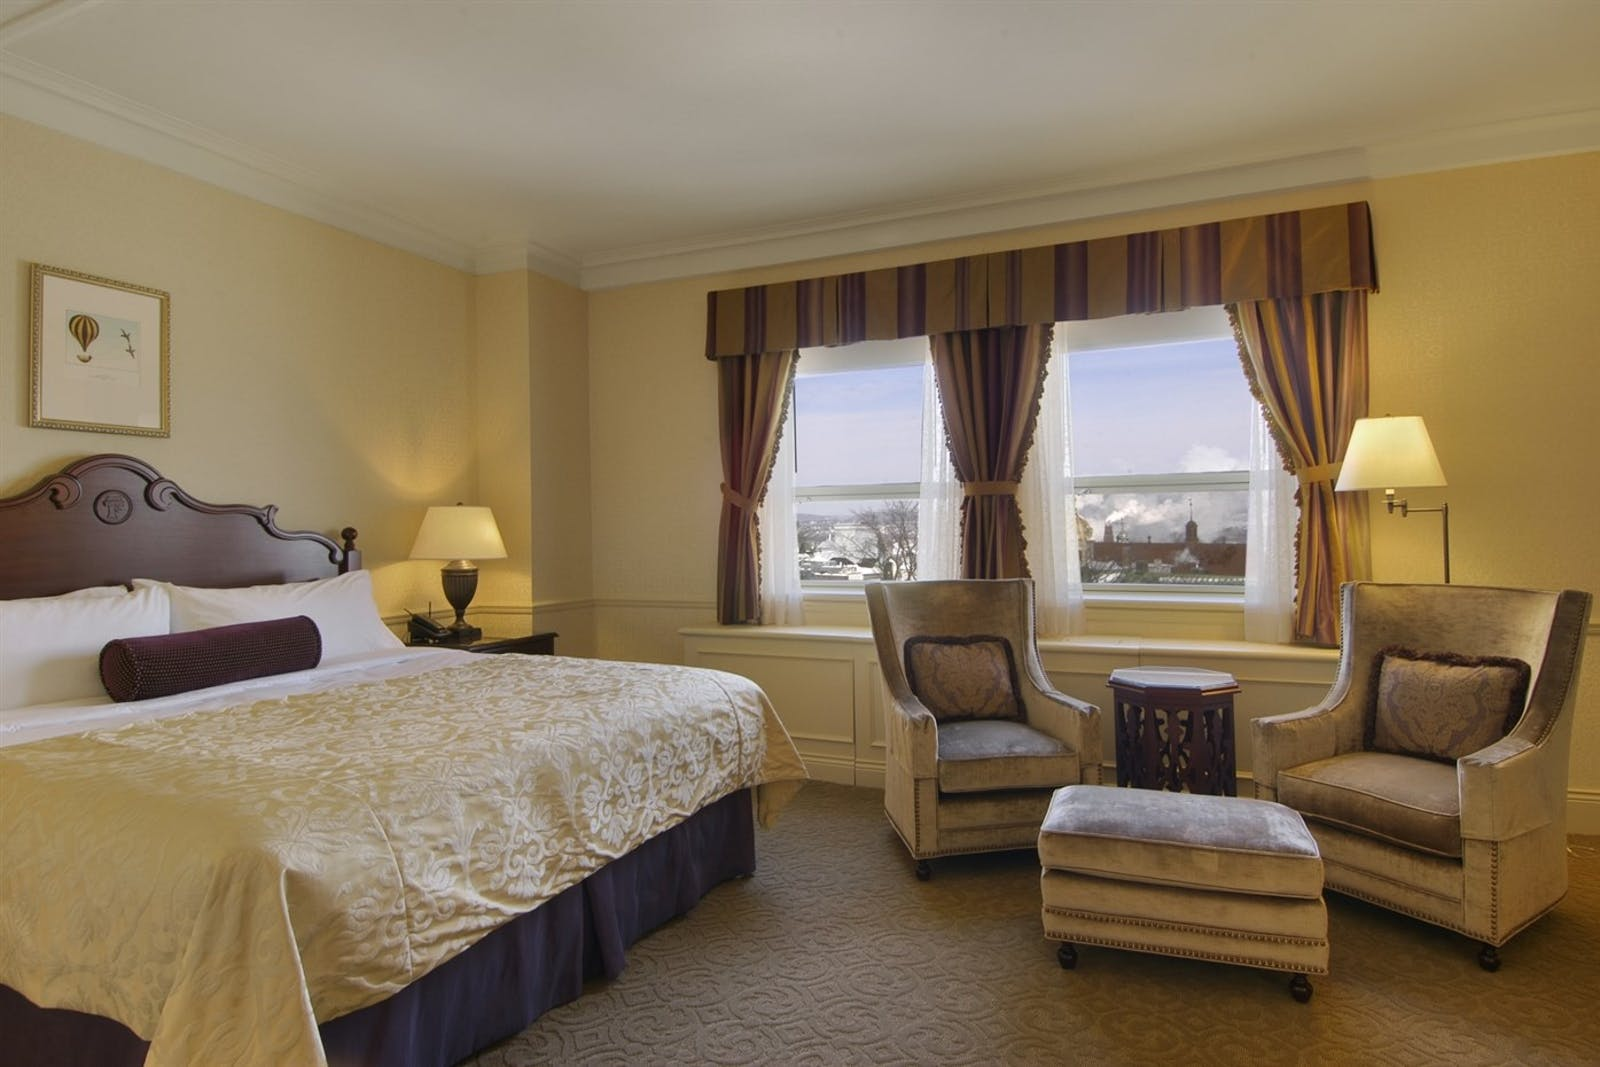 Fairmont Room at Fairmont Le Chateau Frontenac, Quebec City